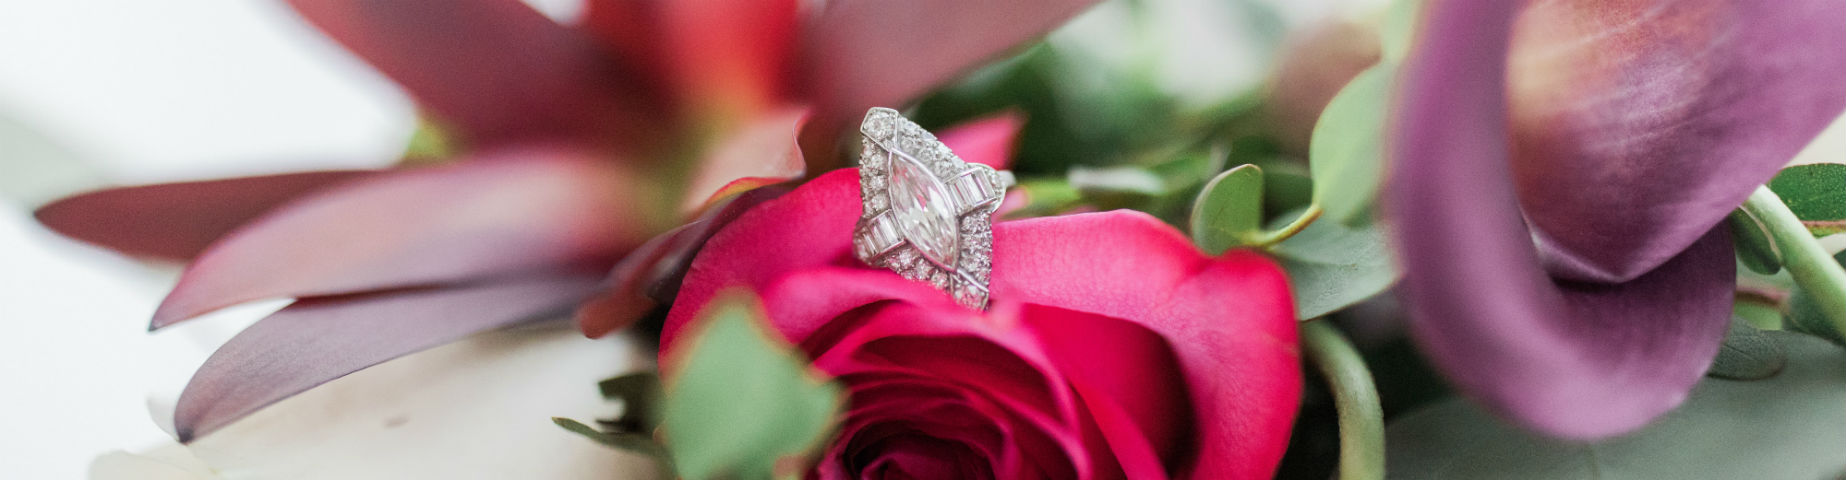 marquise engagement ring sitting on rose